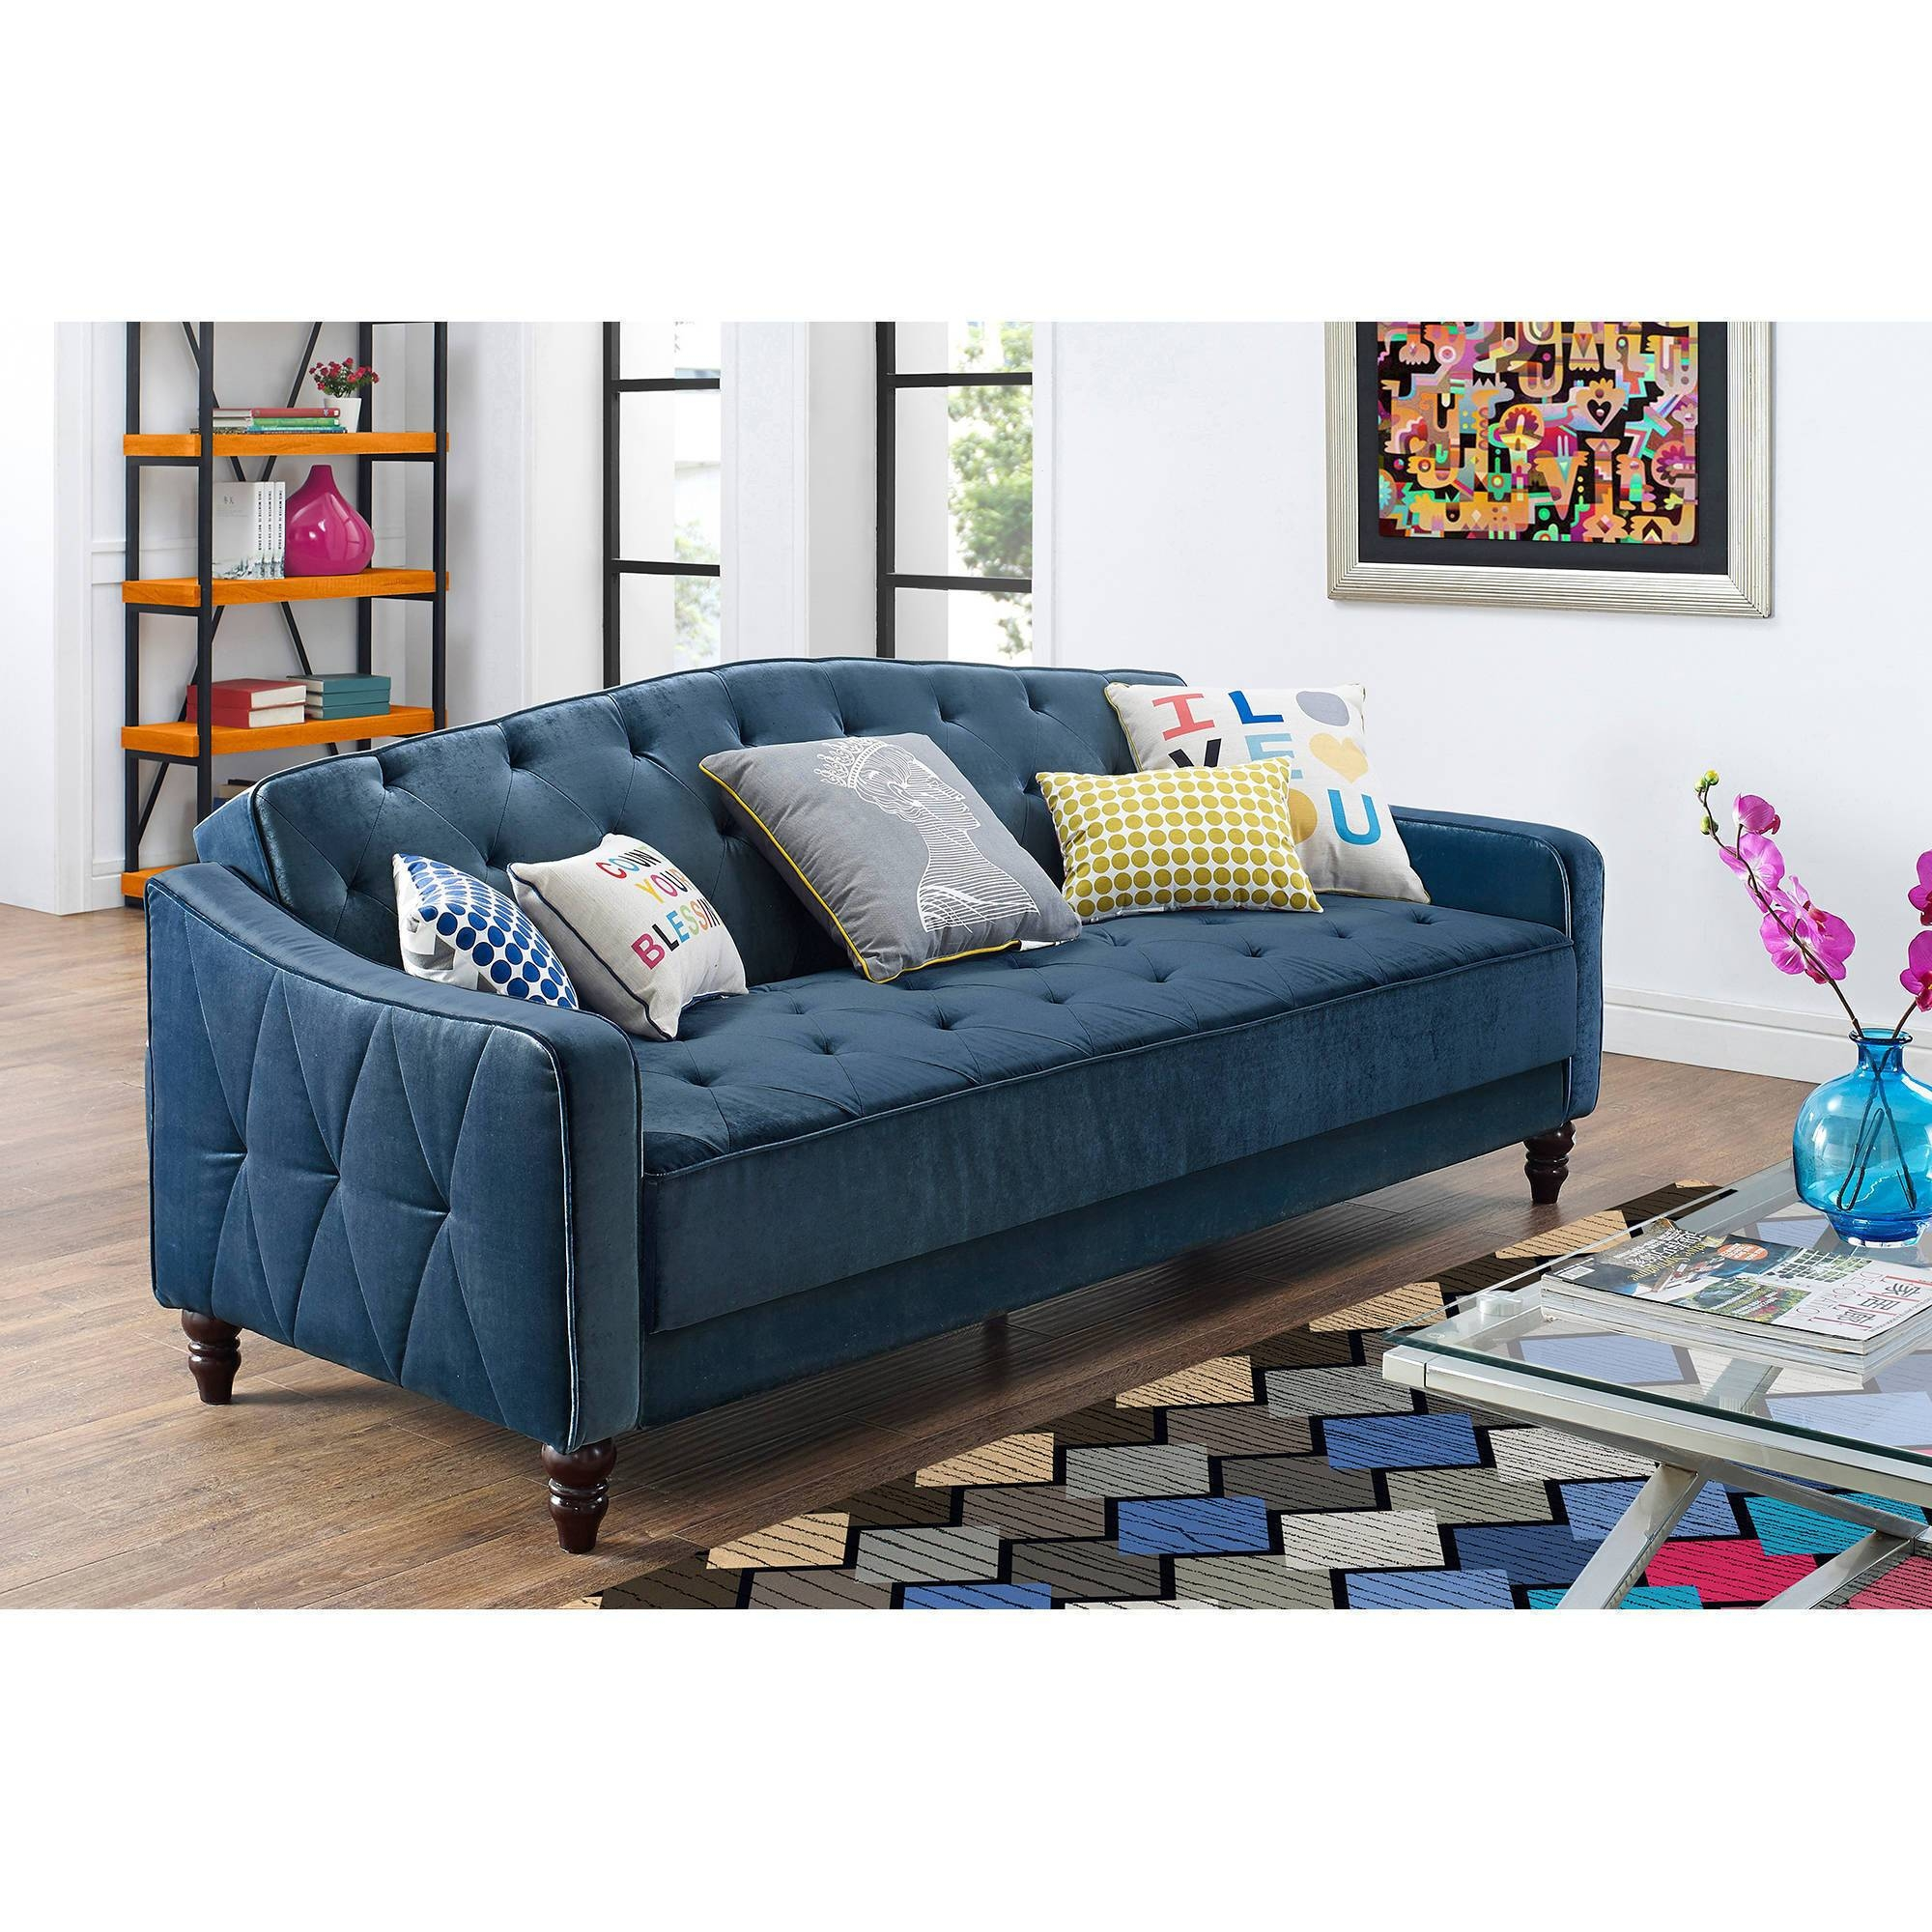 Sofa: Modern Look With A Low Profile Style With Walmart Sofa Bed Throughout City Sofa Beds (View 24 of 30)